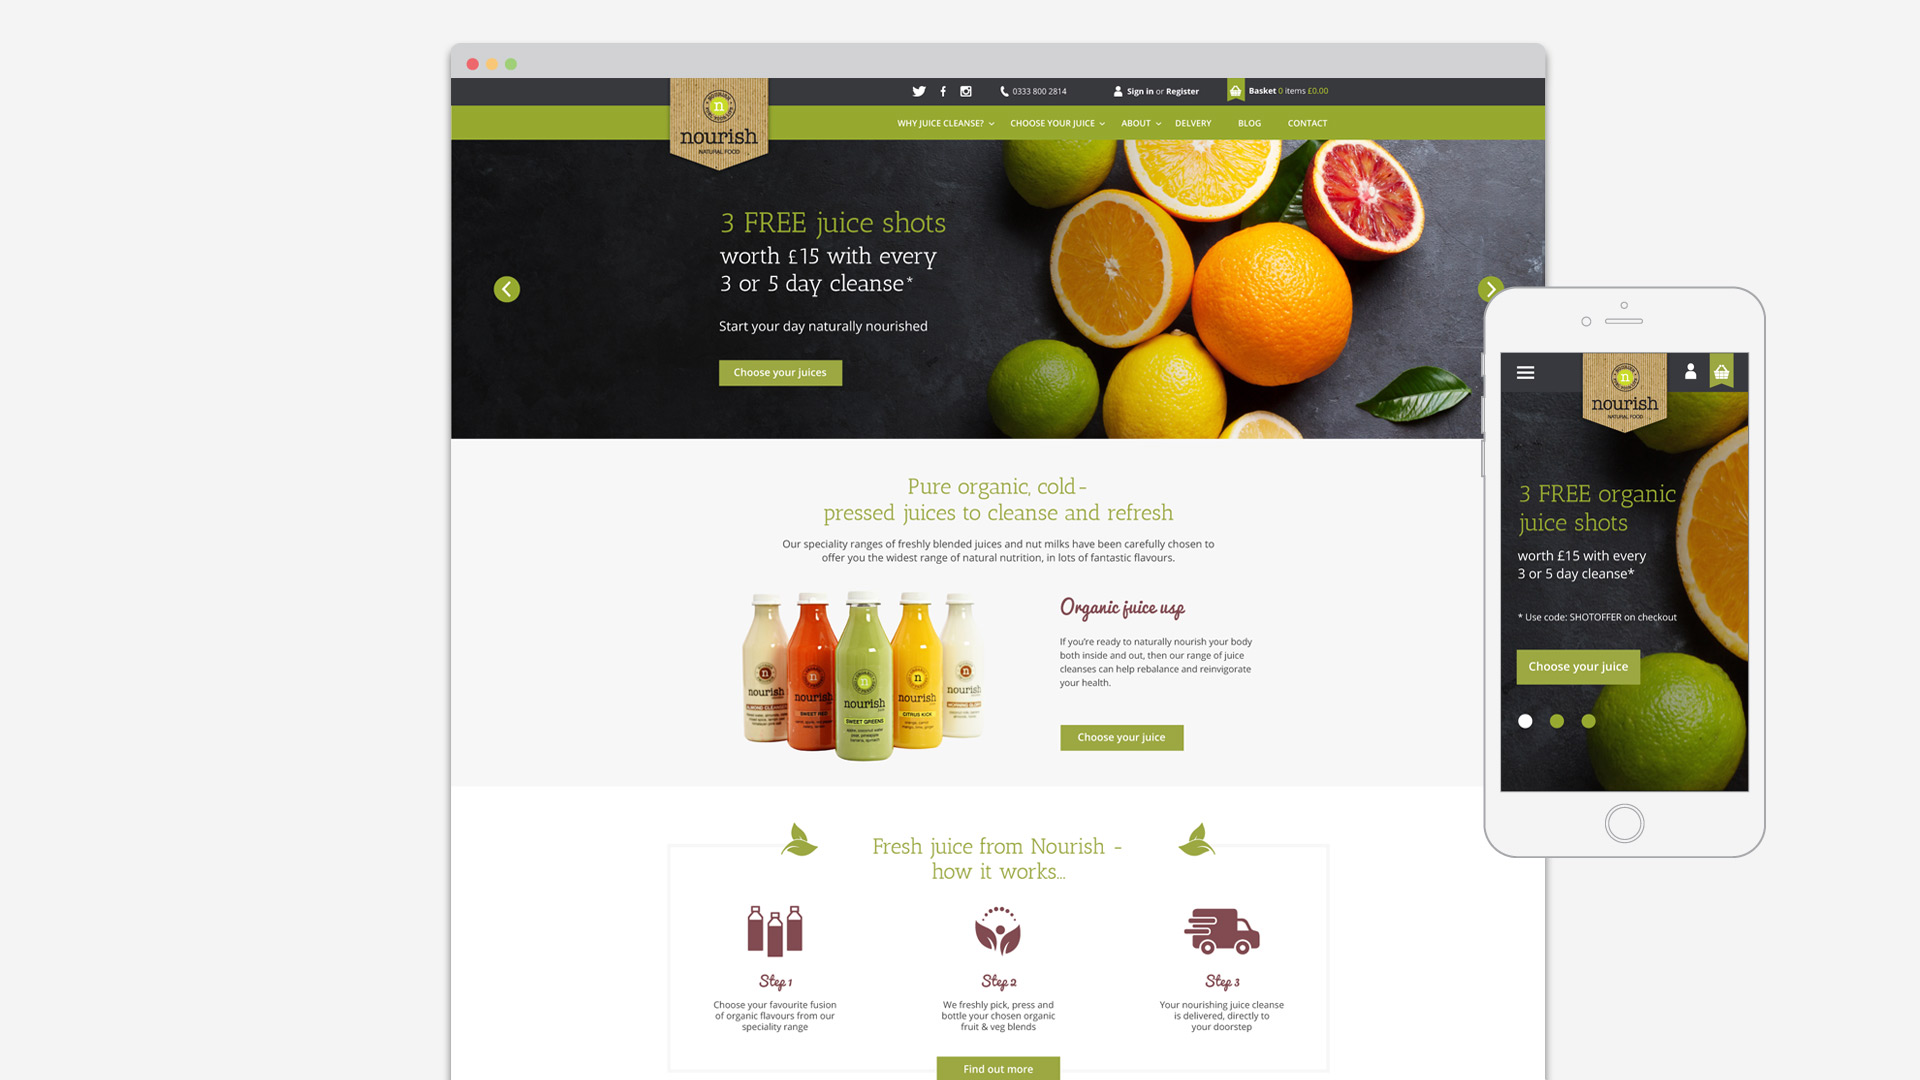 nourish website design